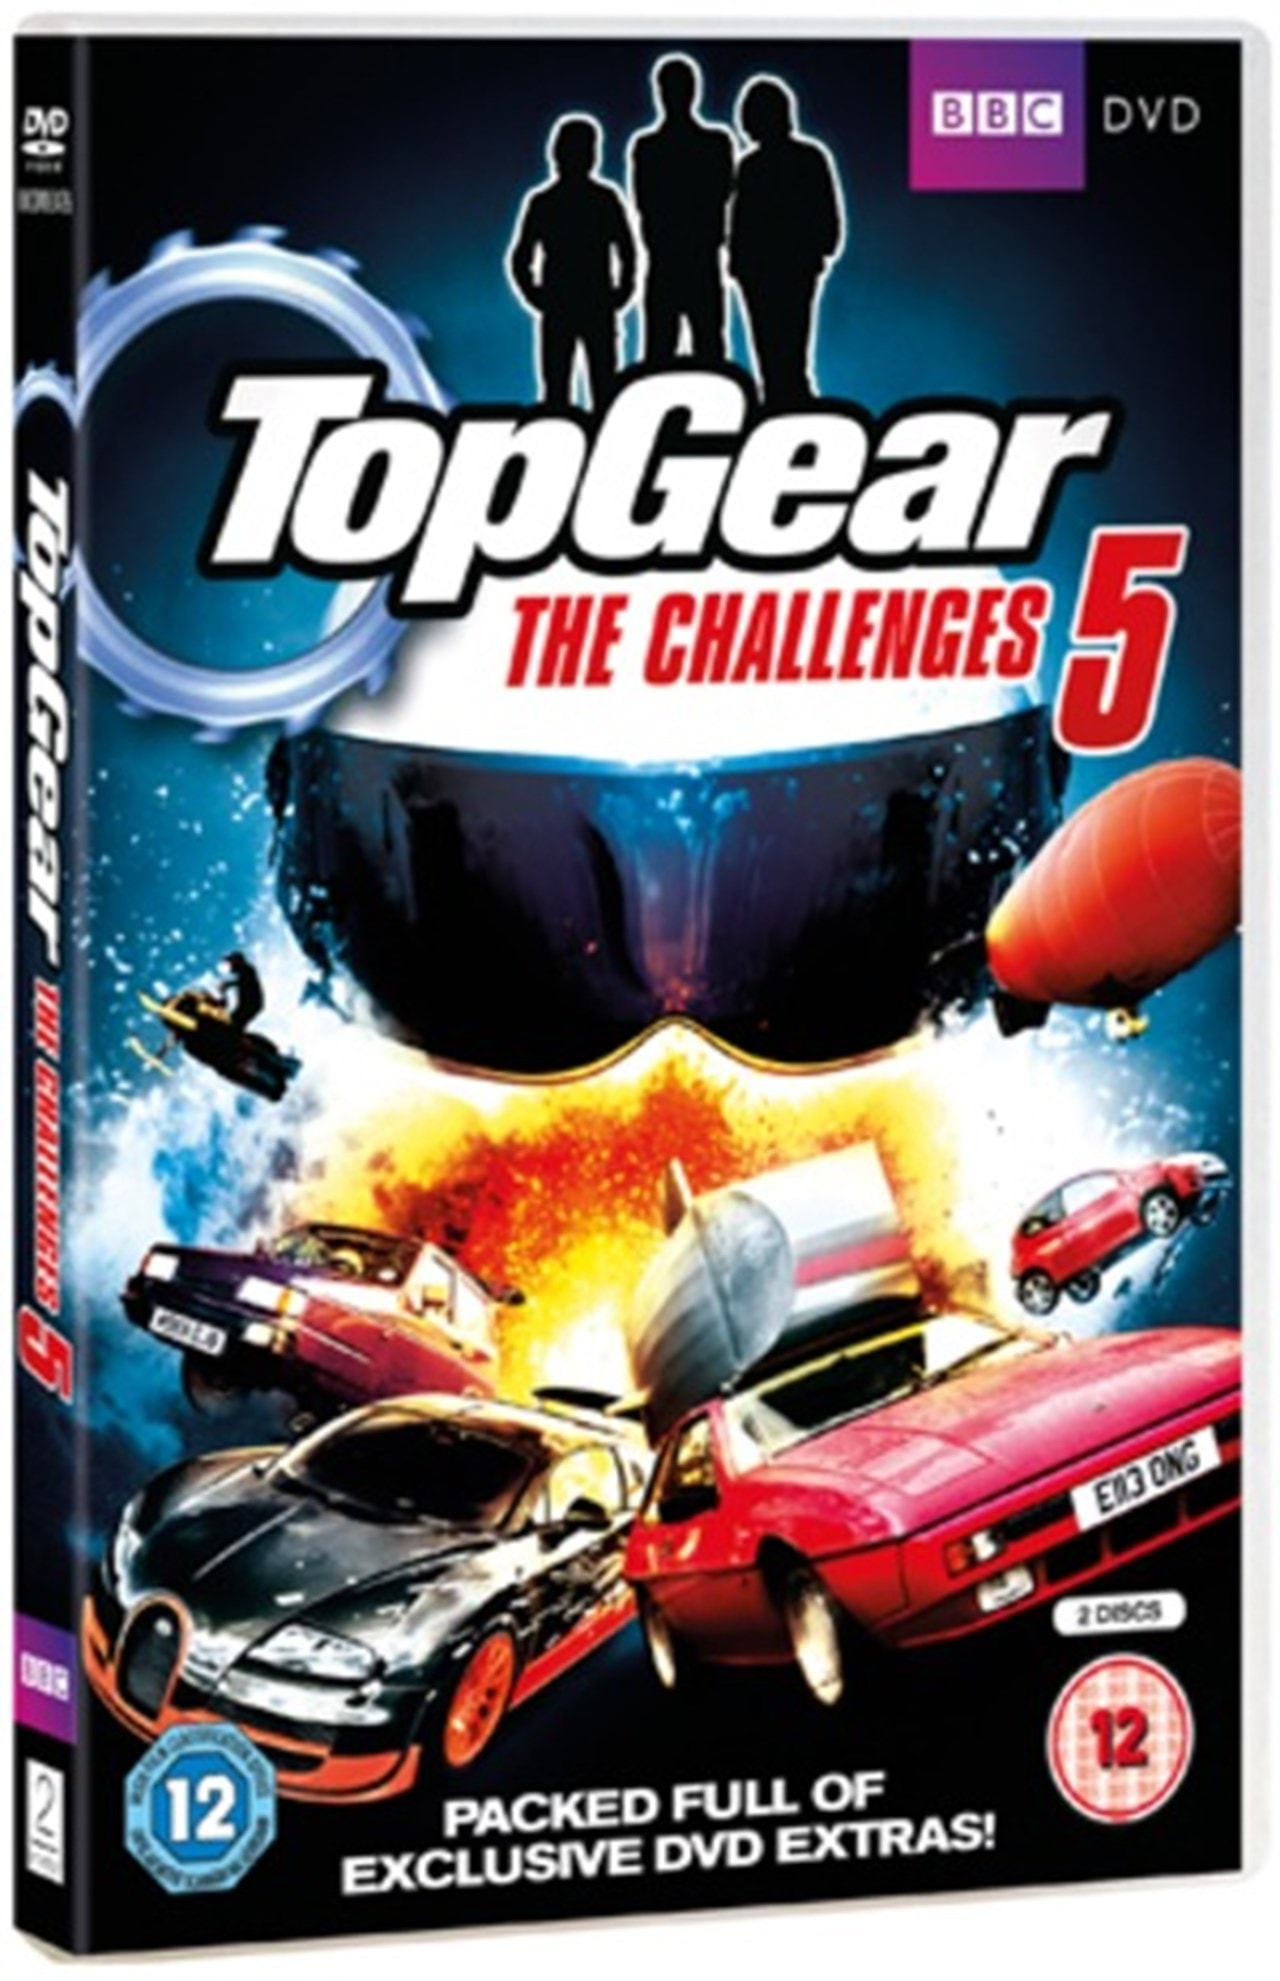 Top Gear - The Challenges: Volume 5 - 1